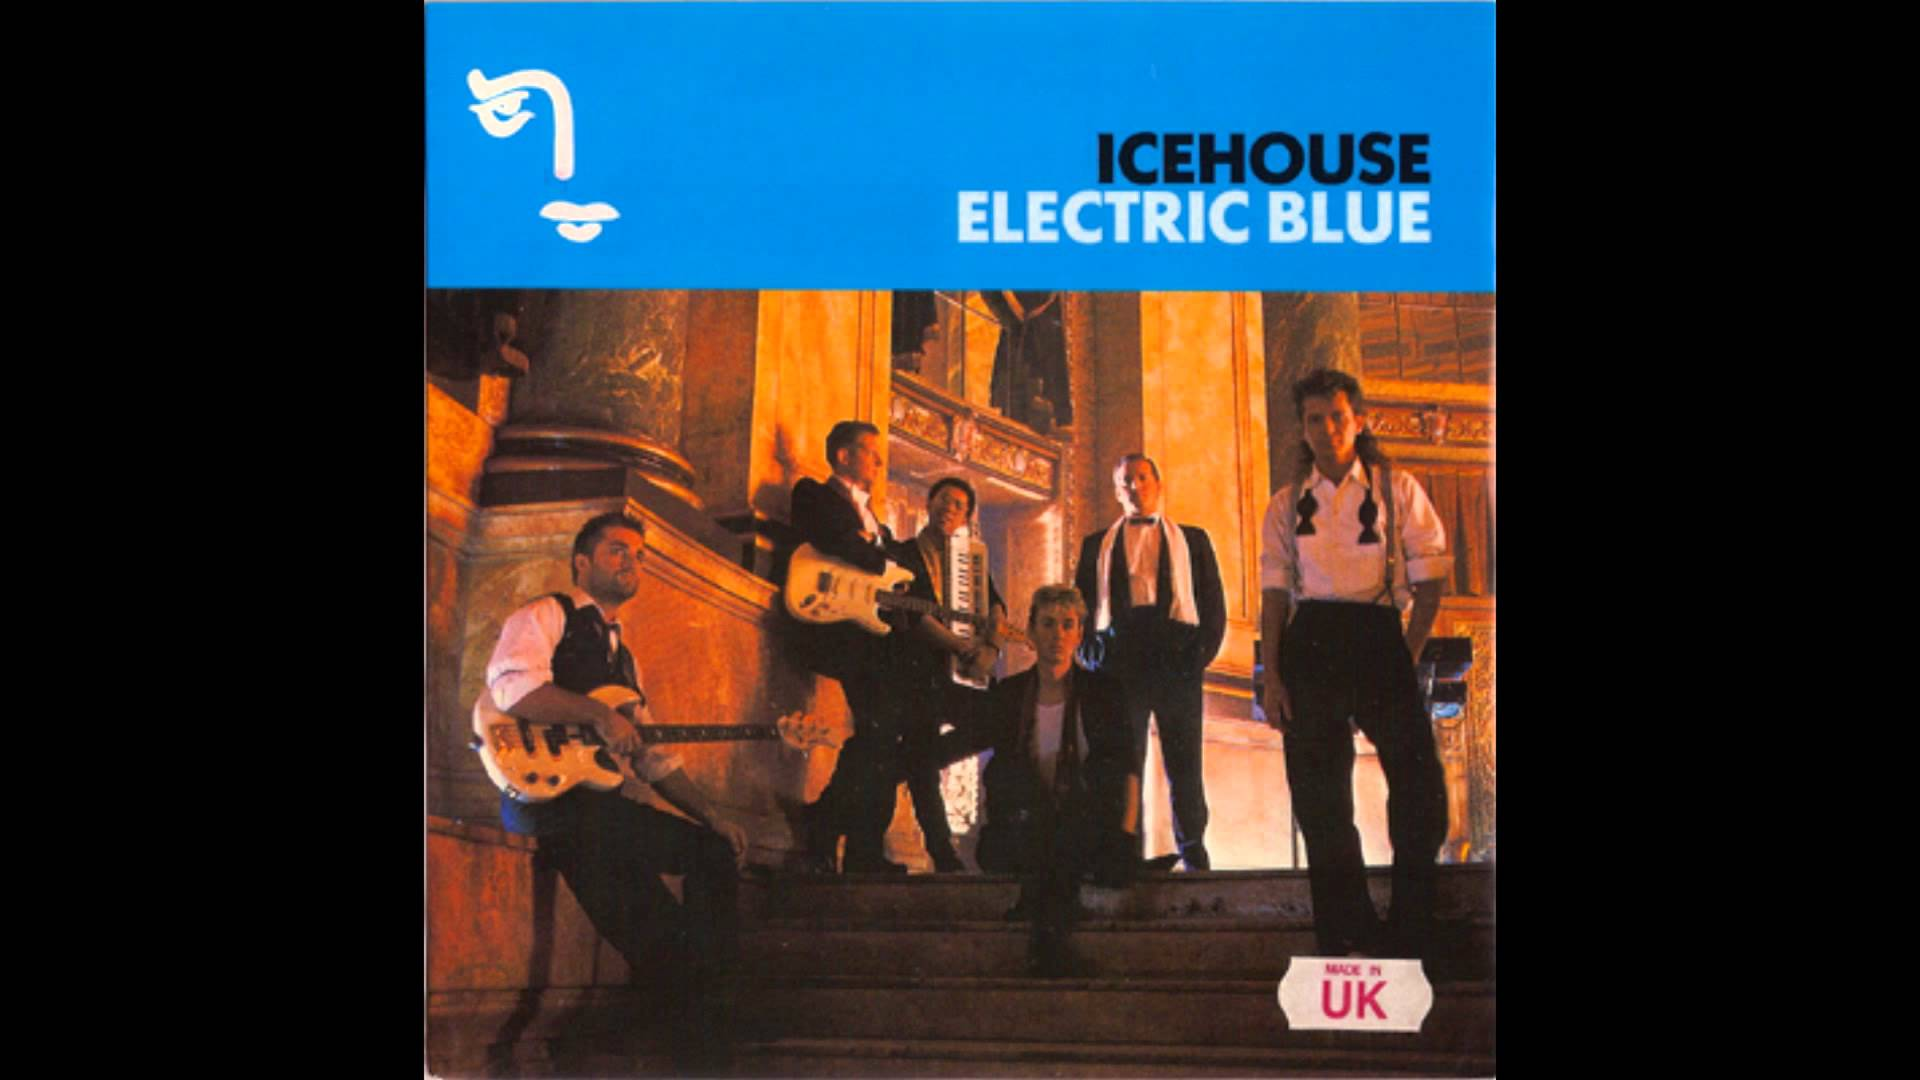 Girl in icehouse electric blue video